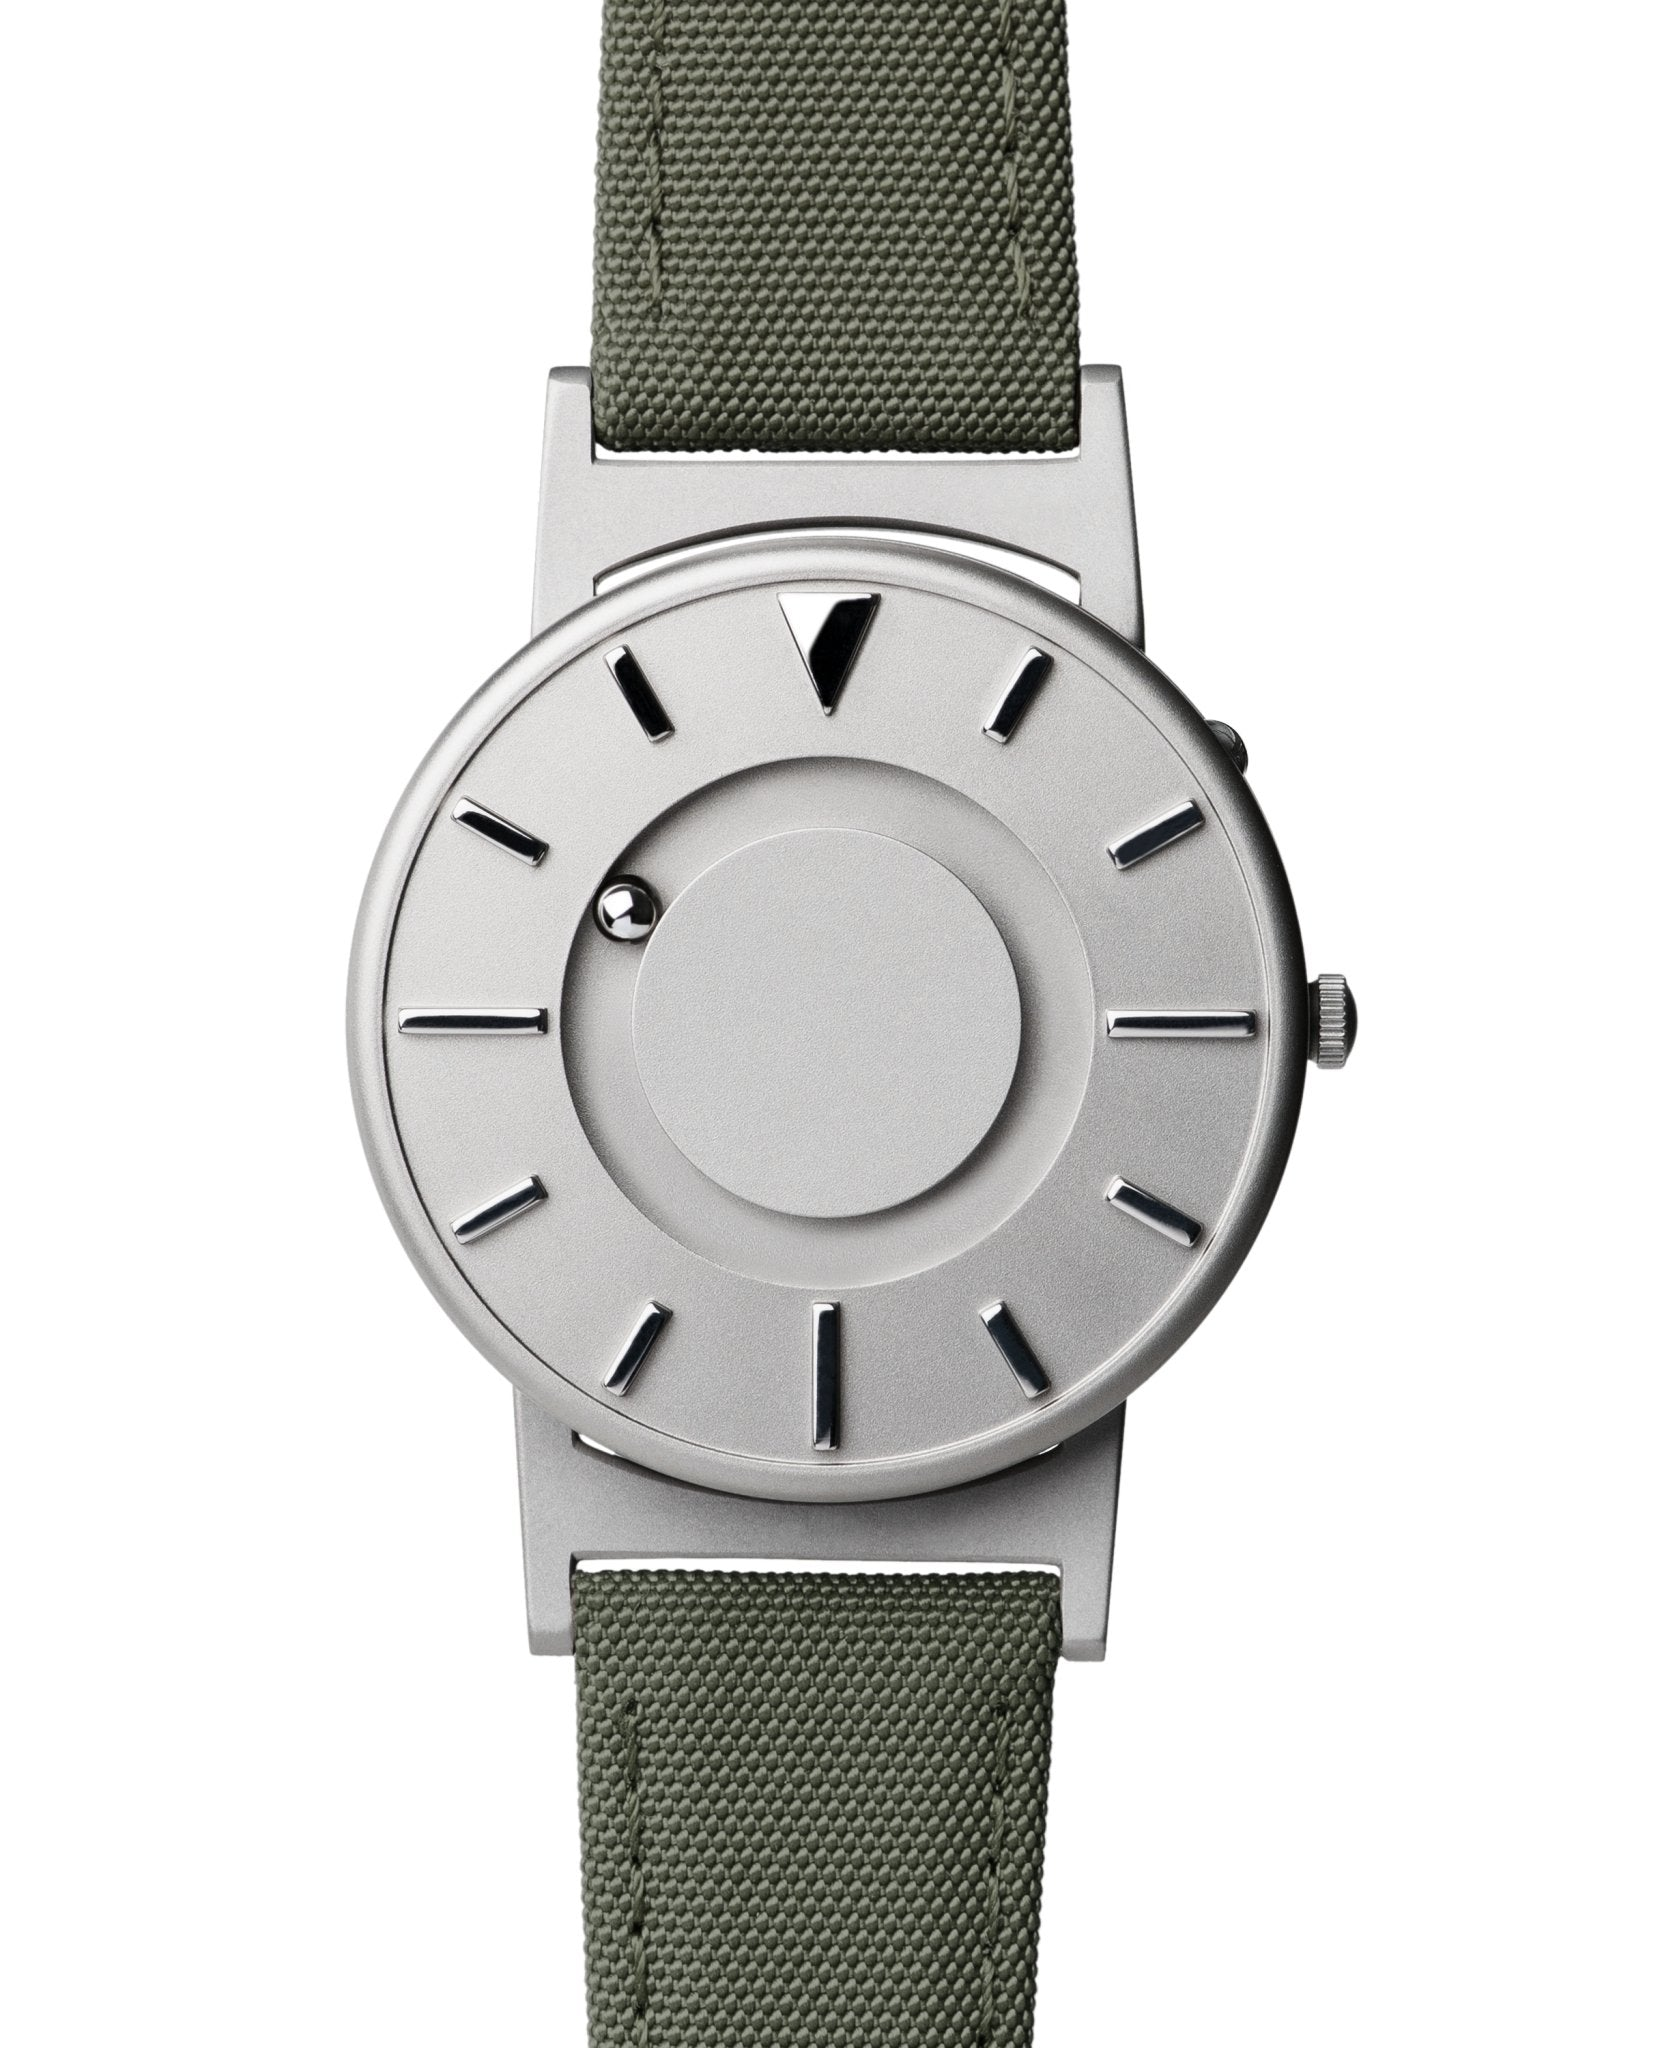 Eone Bradley Green - Watches & Crystals